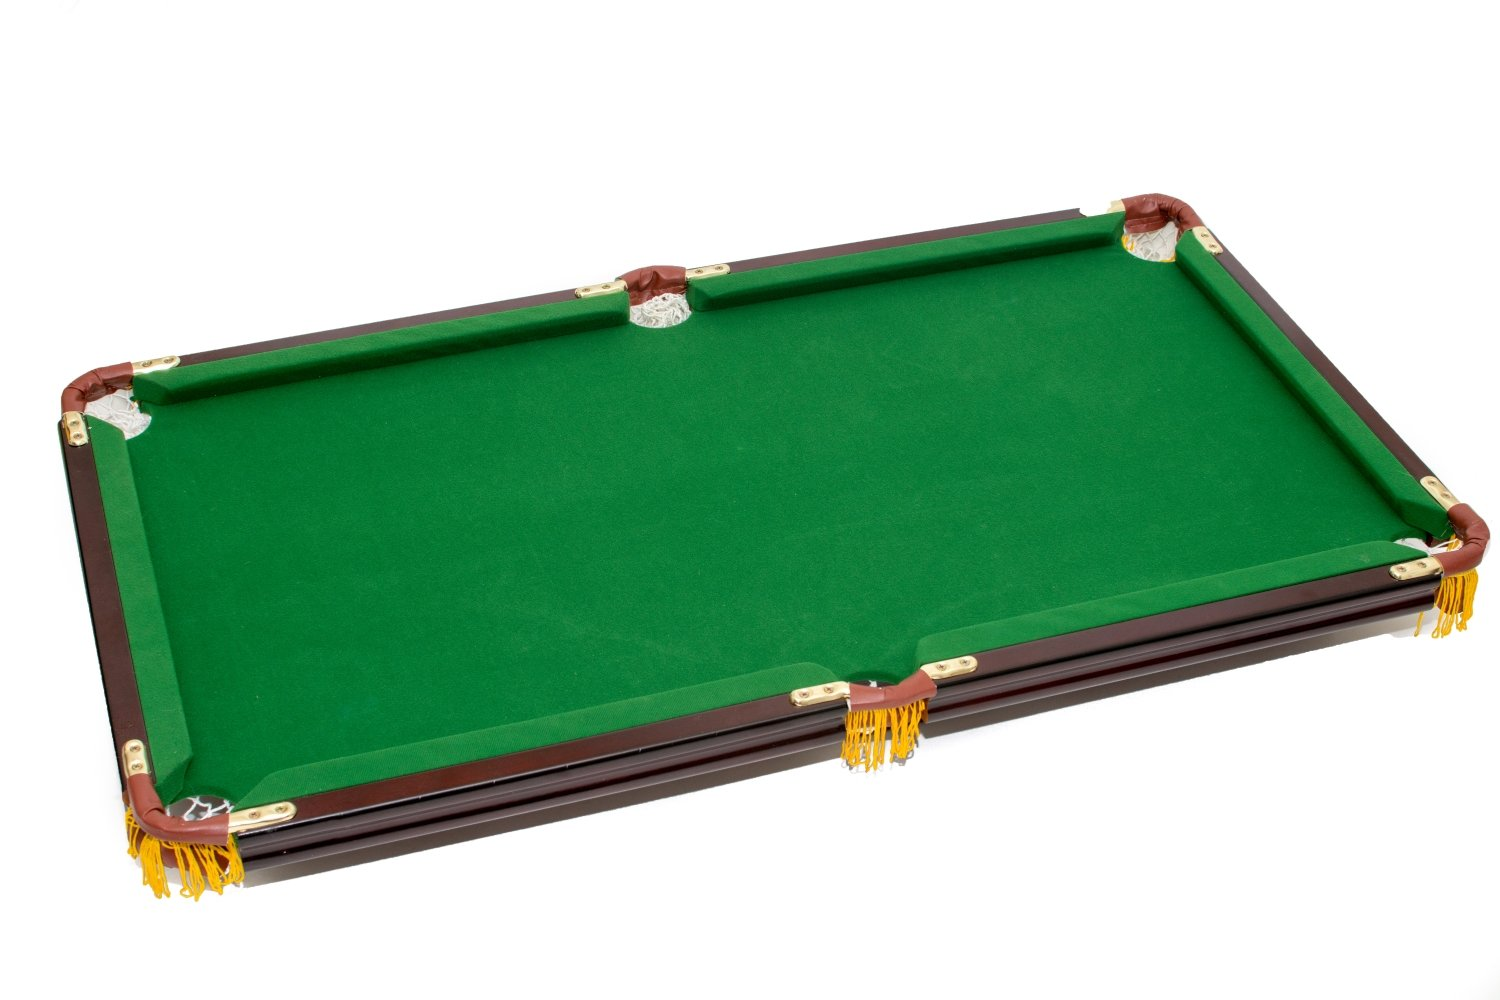 Bello Games New York, Deluxe Folding Pool Table EXTRA LARGE 44''